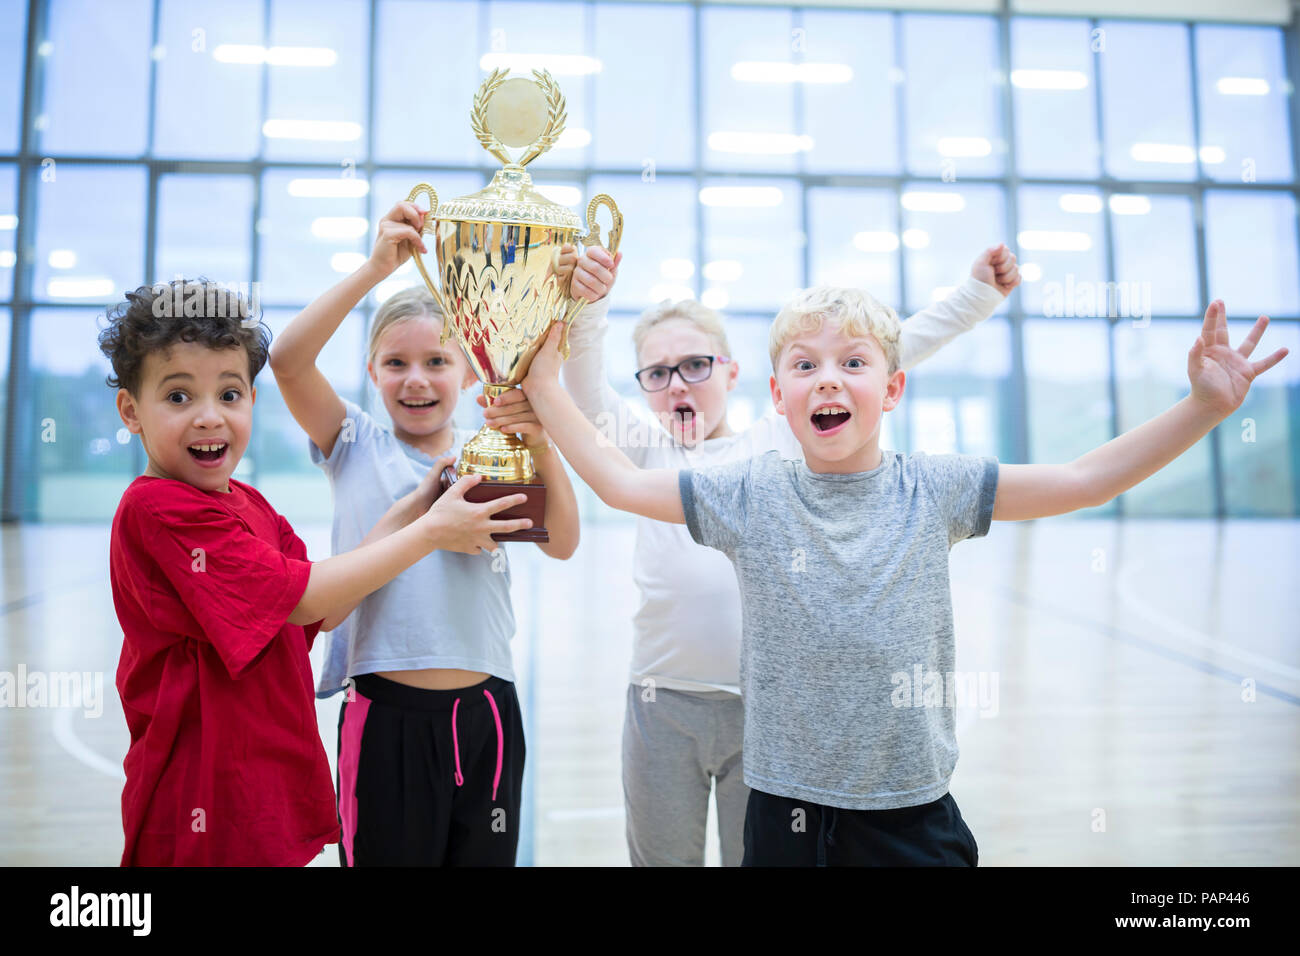 Happy pupils holding trophy in gym - Stock Image